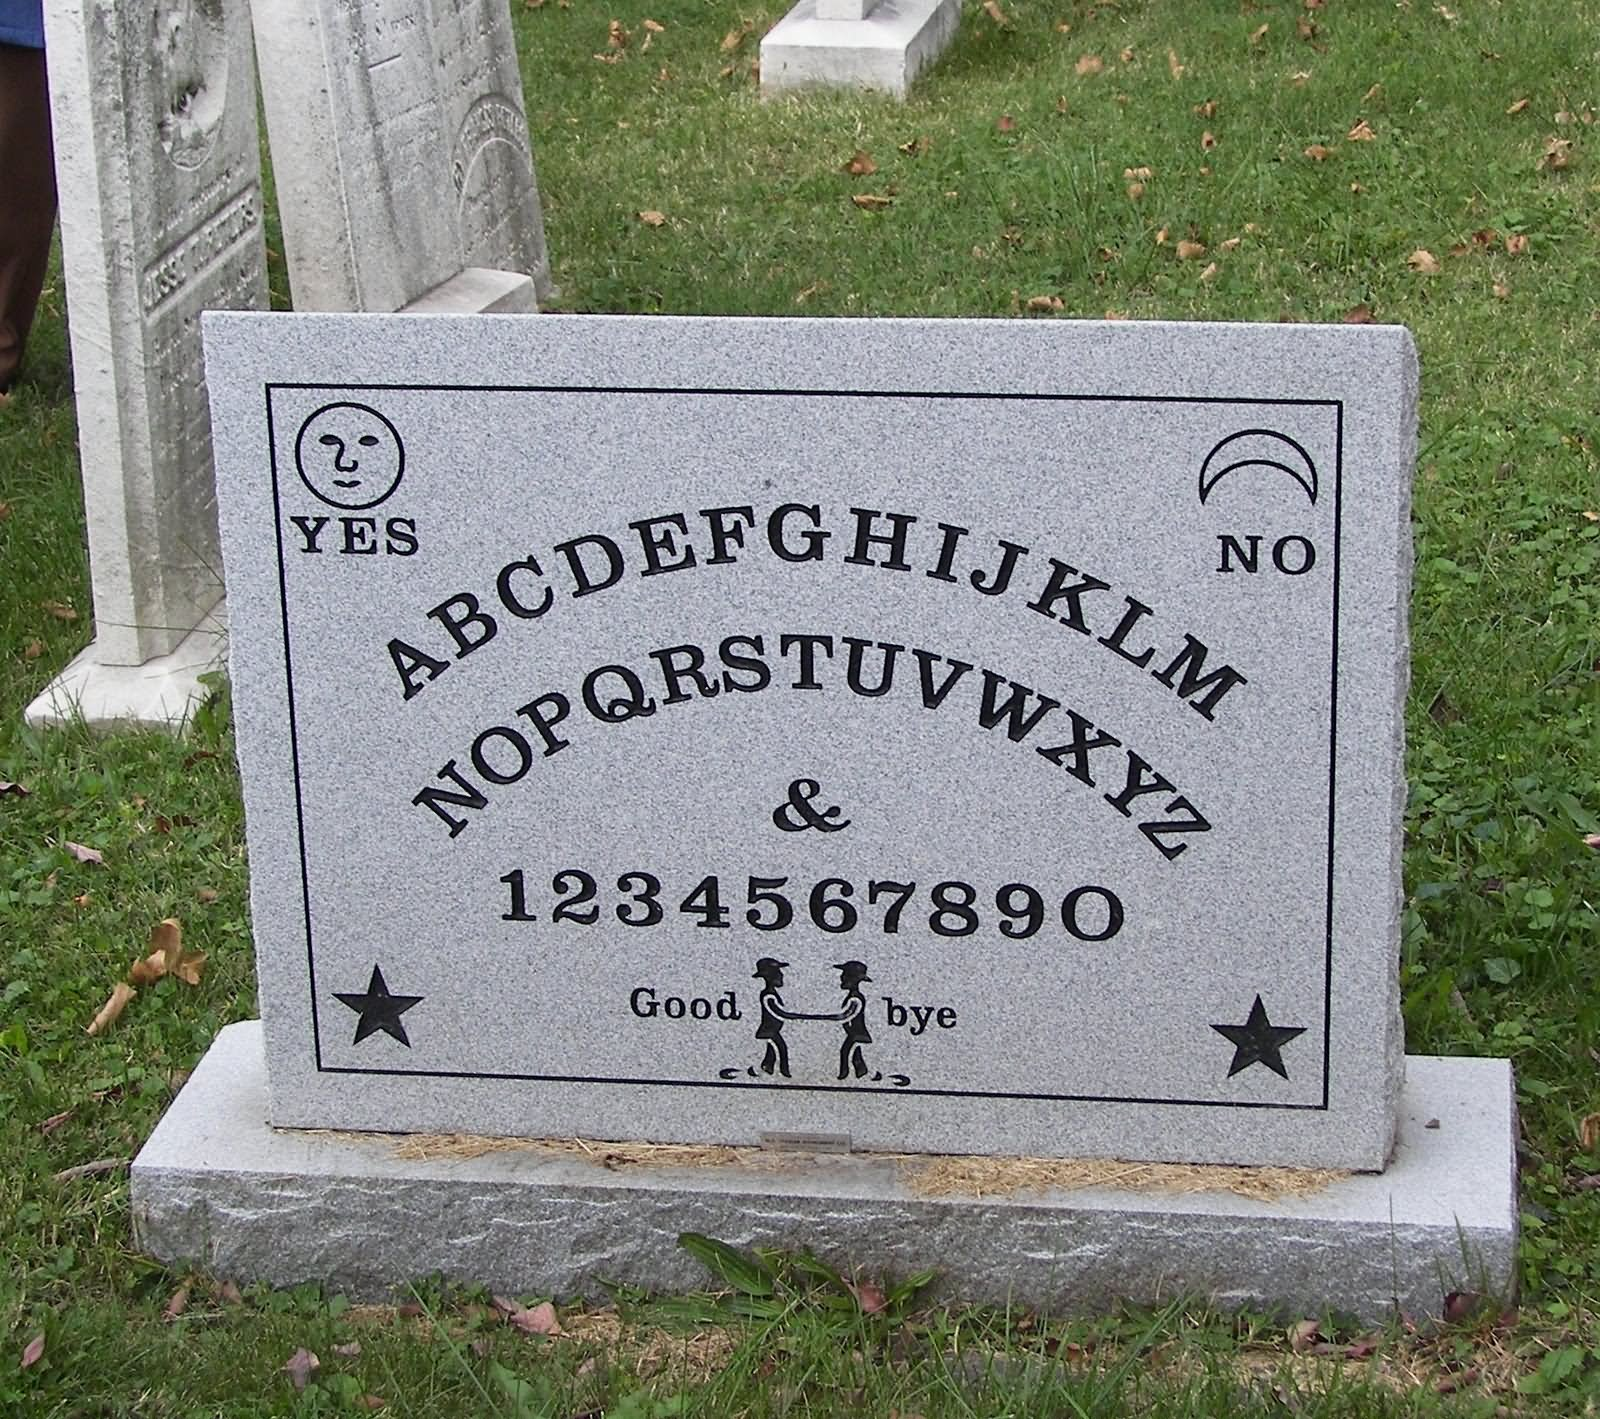 Tombstone Quotes Funny: Funny Alphabetical Tombstone Picture For Whatsapp